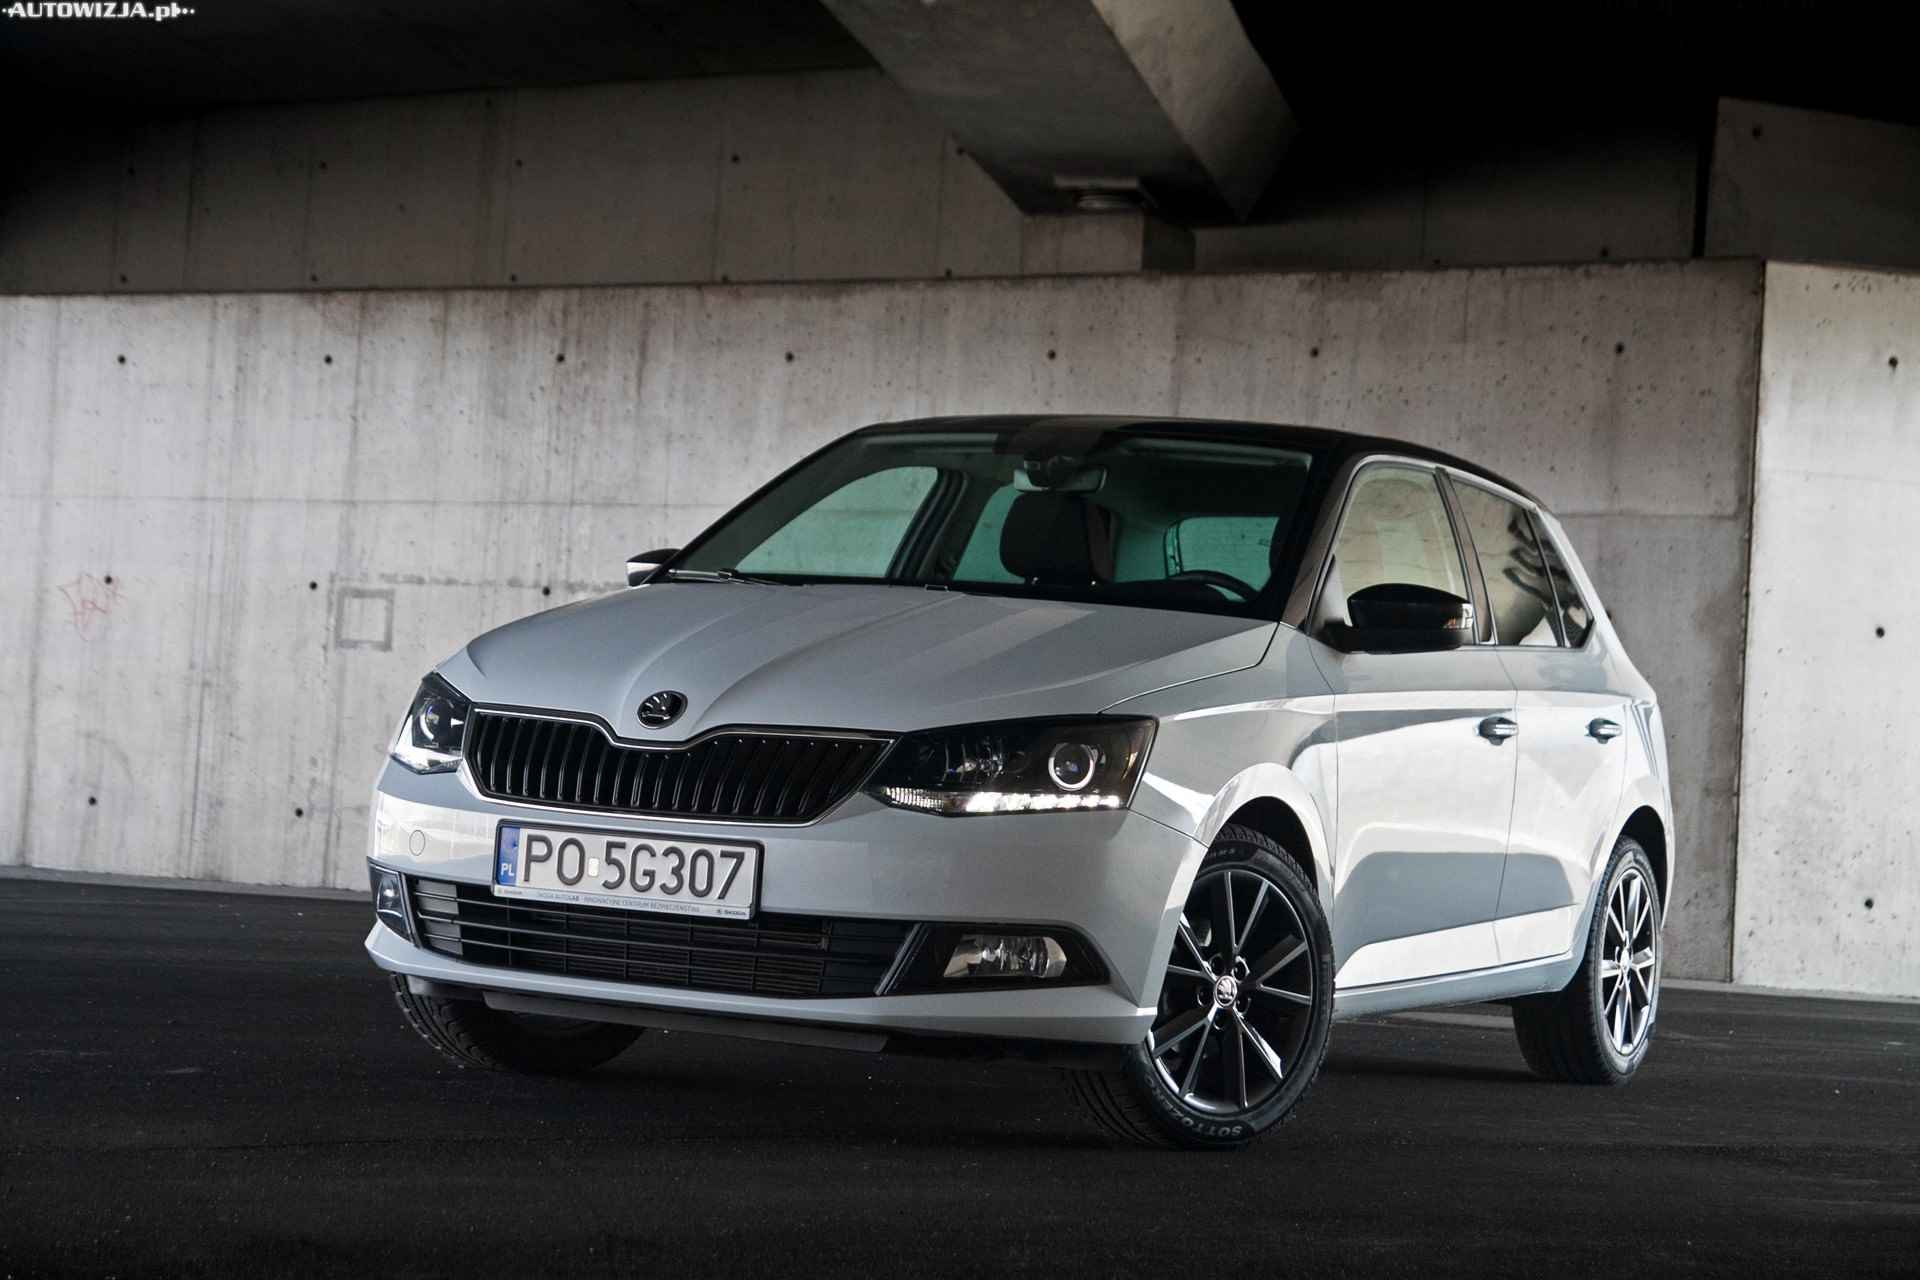 skoda fabia iii ambition 1 2 tsi 90 km auto test motoryzacja. Black Bedroom Furniture Sets. Home Design Ideas